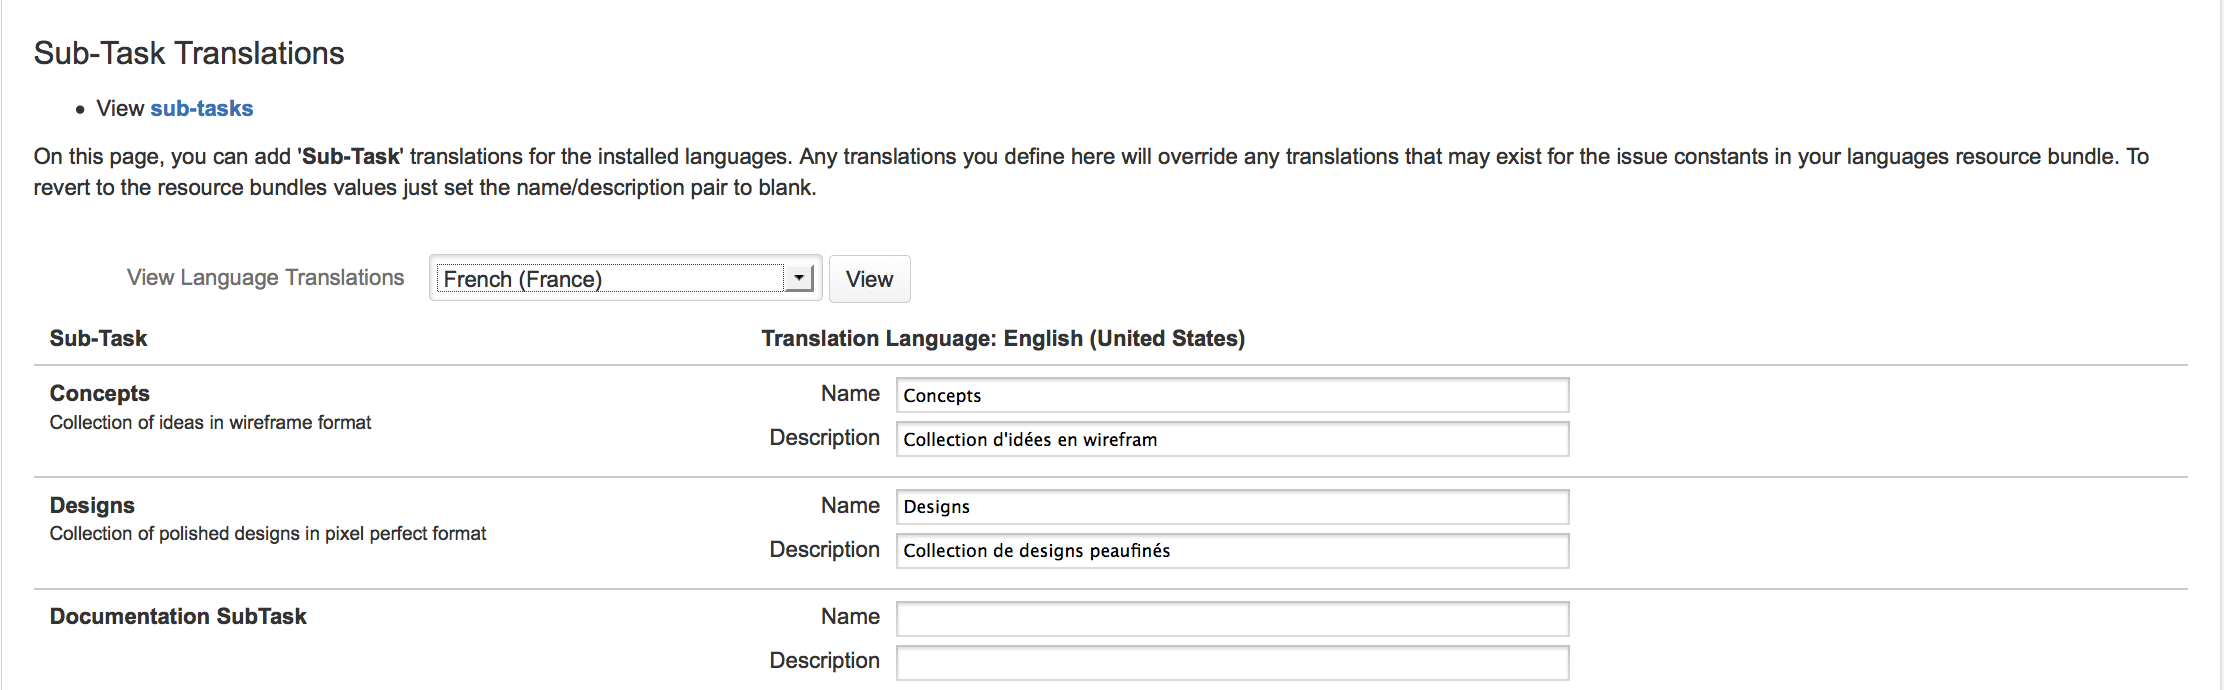 Providing custom translations.